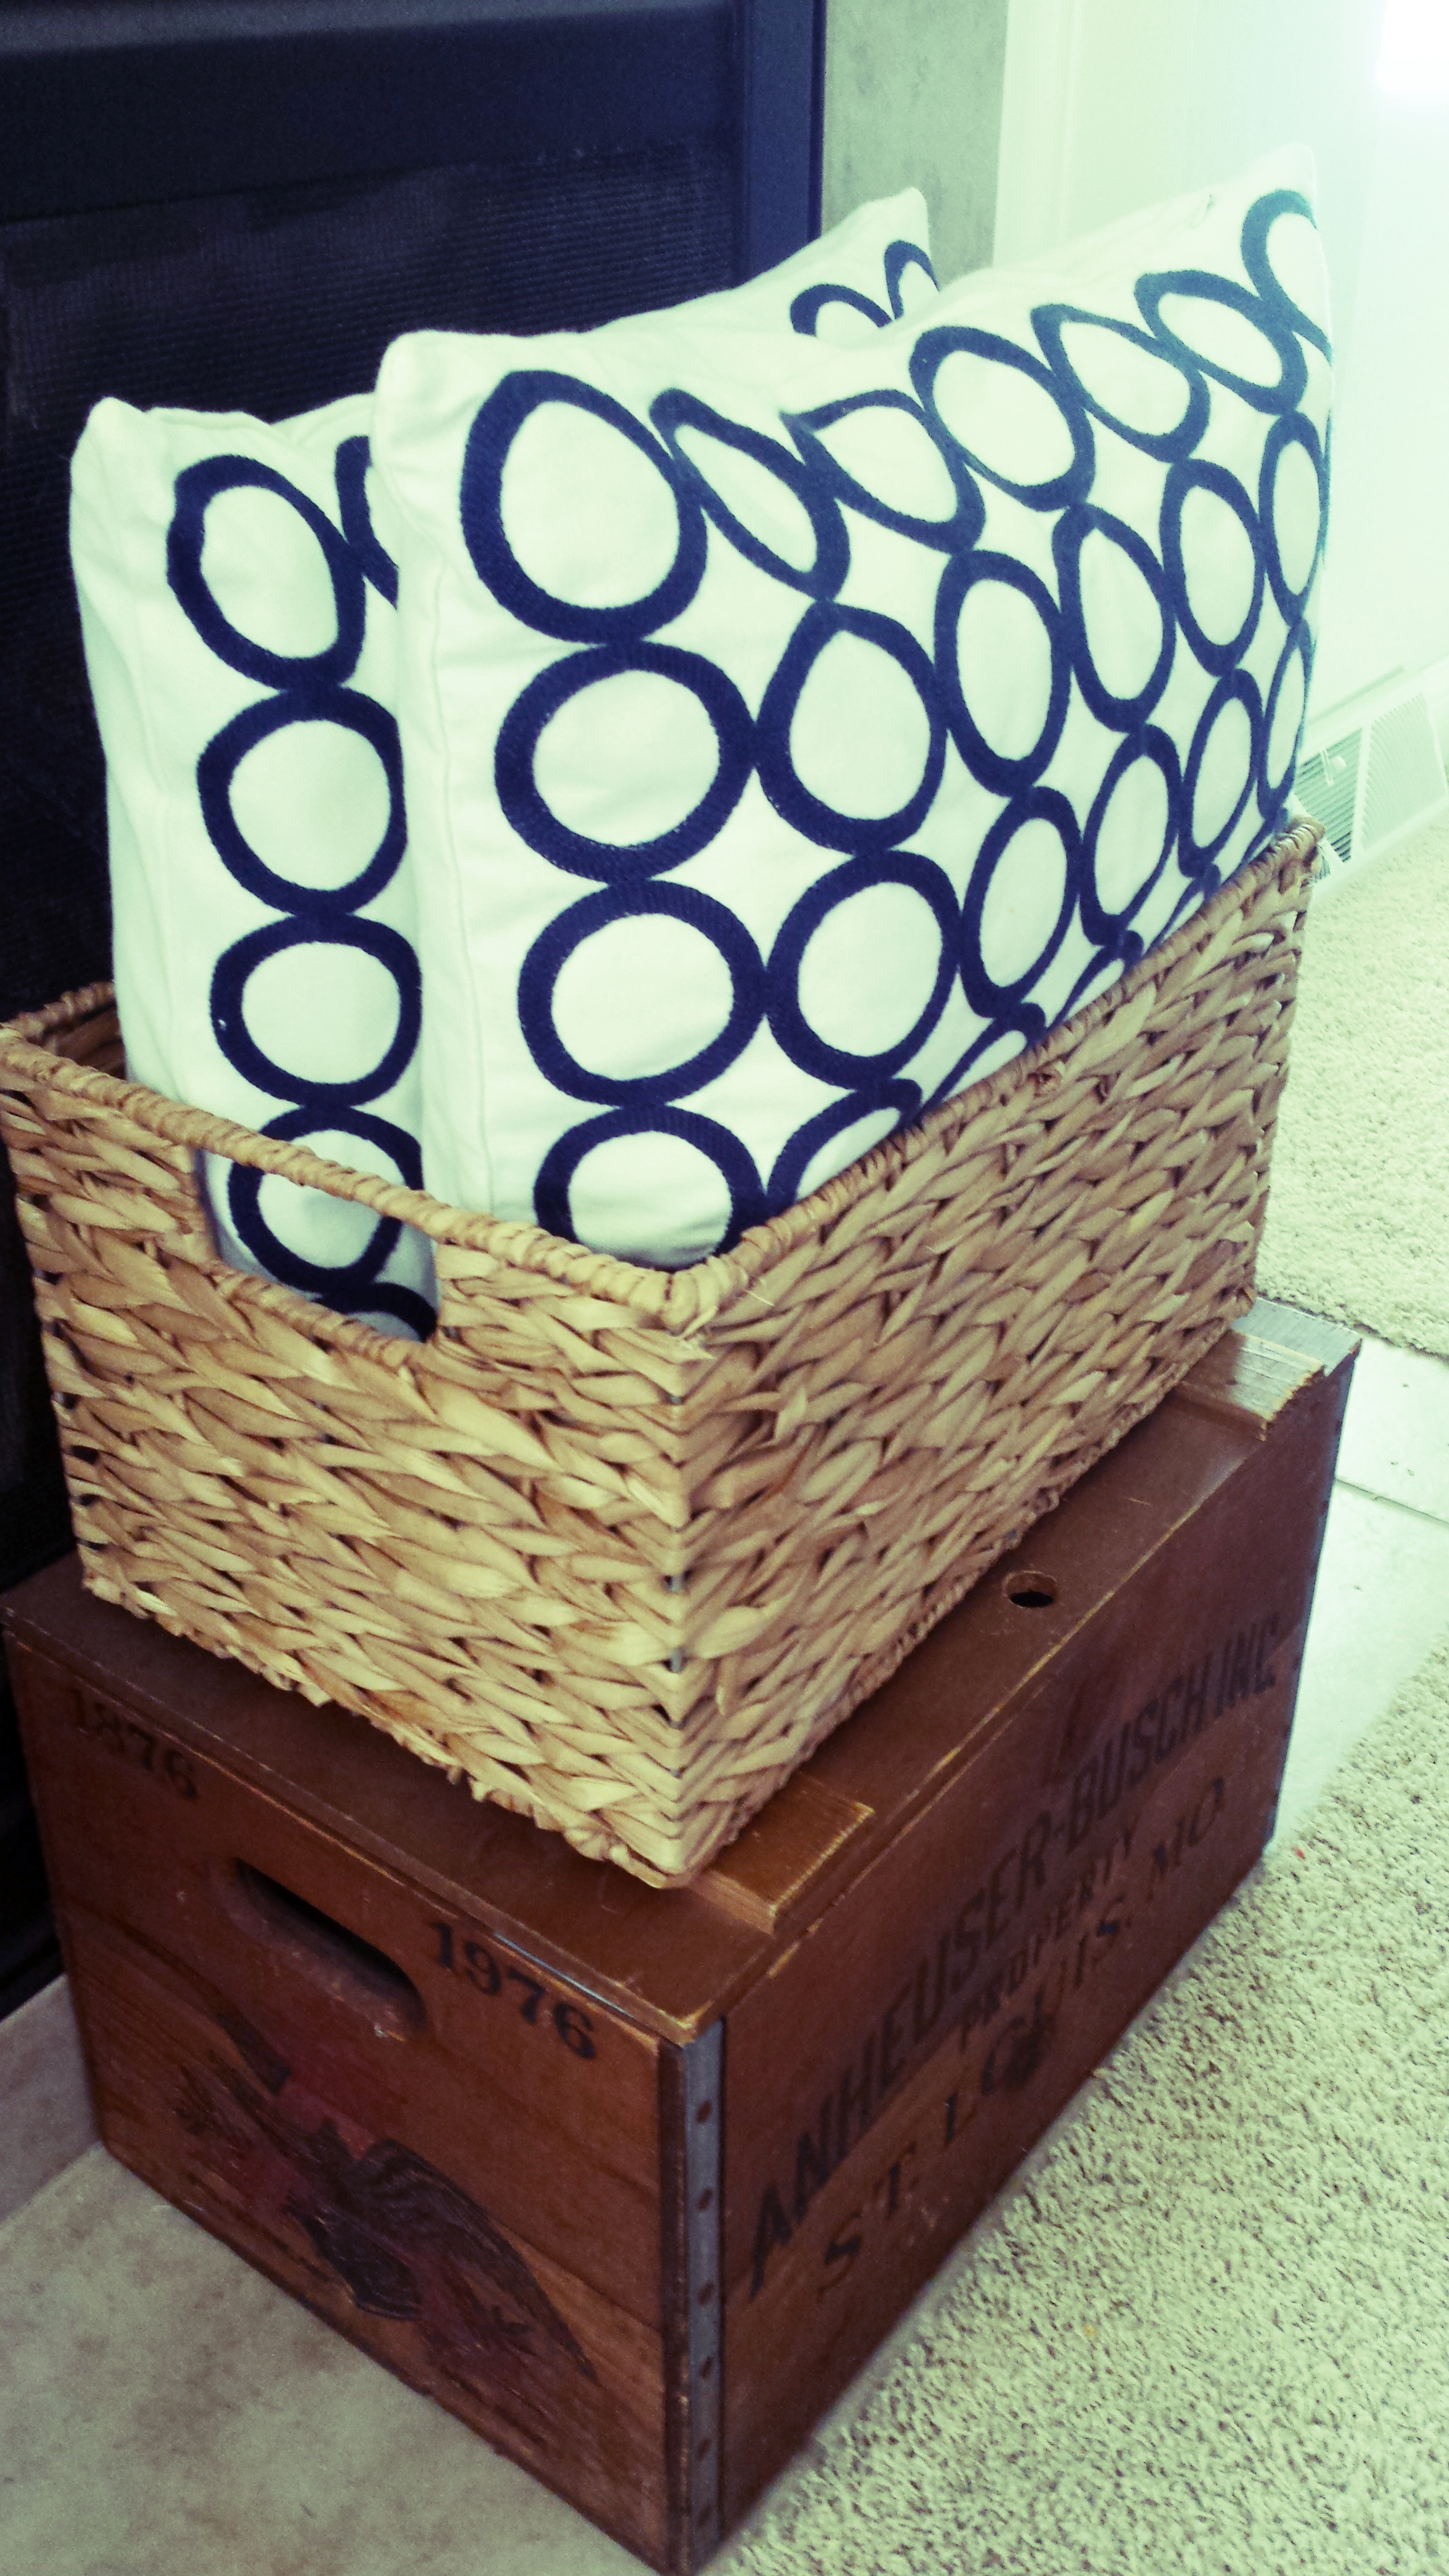 The crate and basket/pillows look pretty right?  What's inside them is not.  Who knew?